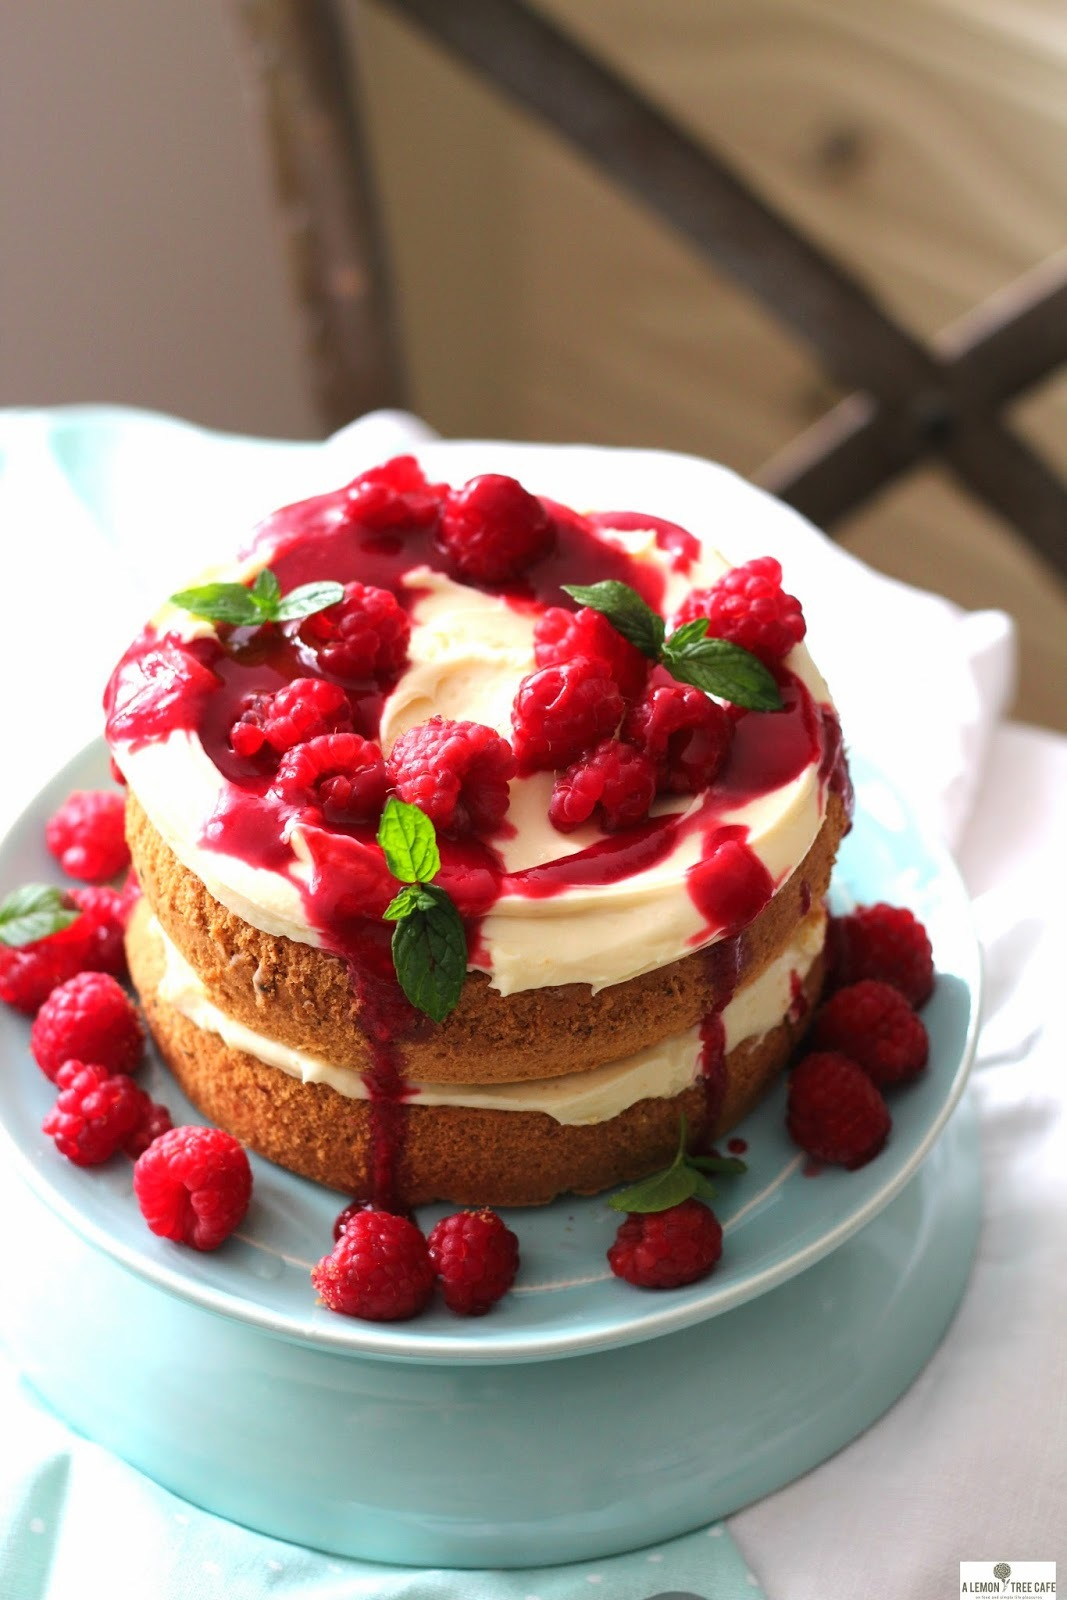 TORT Z KREMEM Z MASCARPONE I BIALEJ CZEKOLADY Z MALINAMI - WHITE CHOCOLATE MASCARPONE CREAM TORTE WITH RASPBERRIES